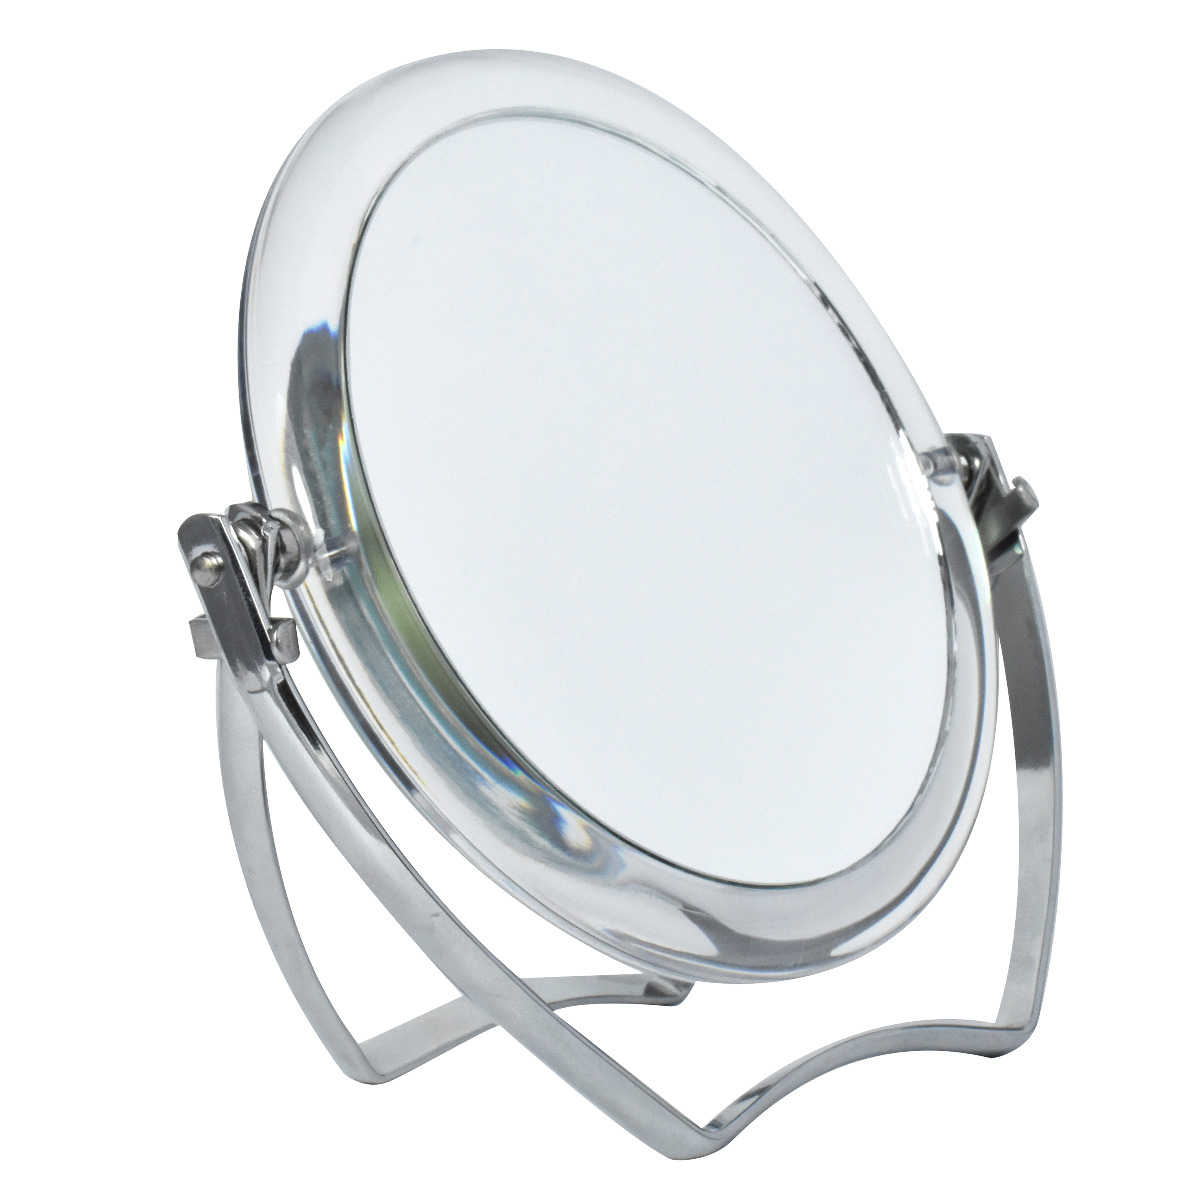 10x Magnification Small Travel Mirror